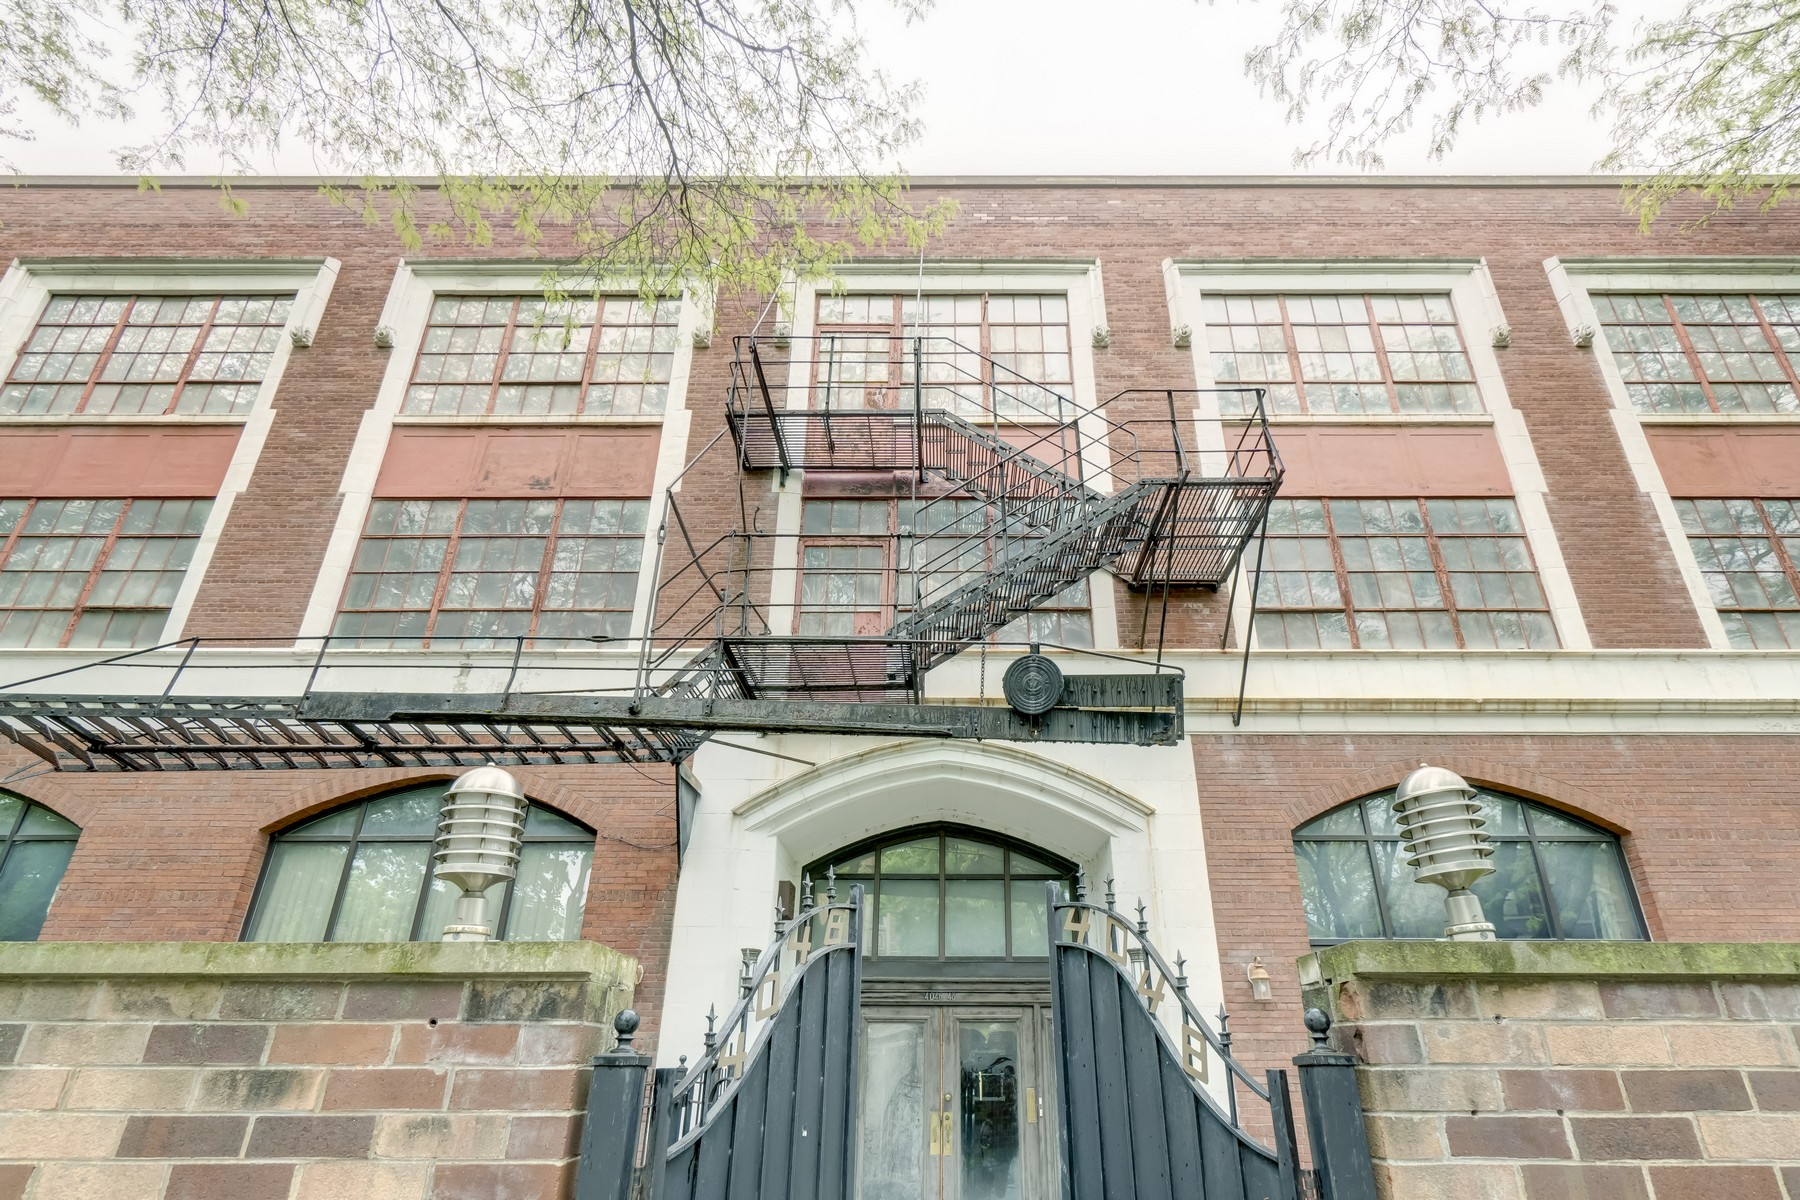 Land for Sale at Impressive Original 3-Story Loft Building 4046 N Hermitage Avenue Chicago, Illinois 60613 United States